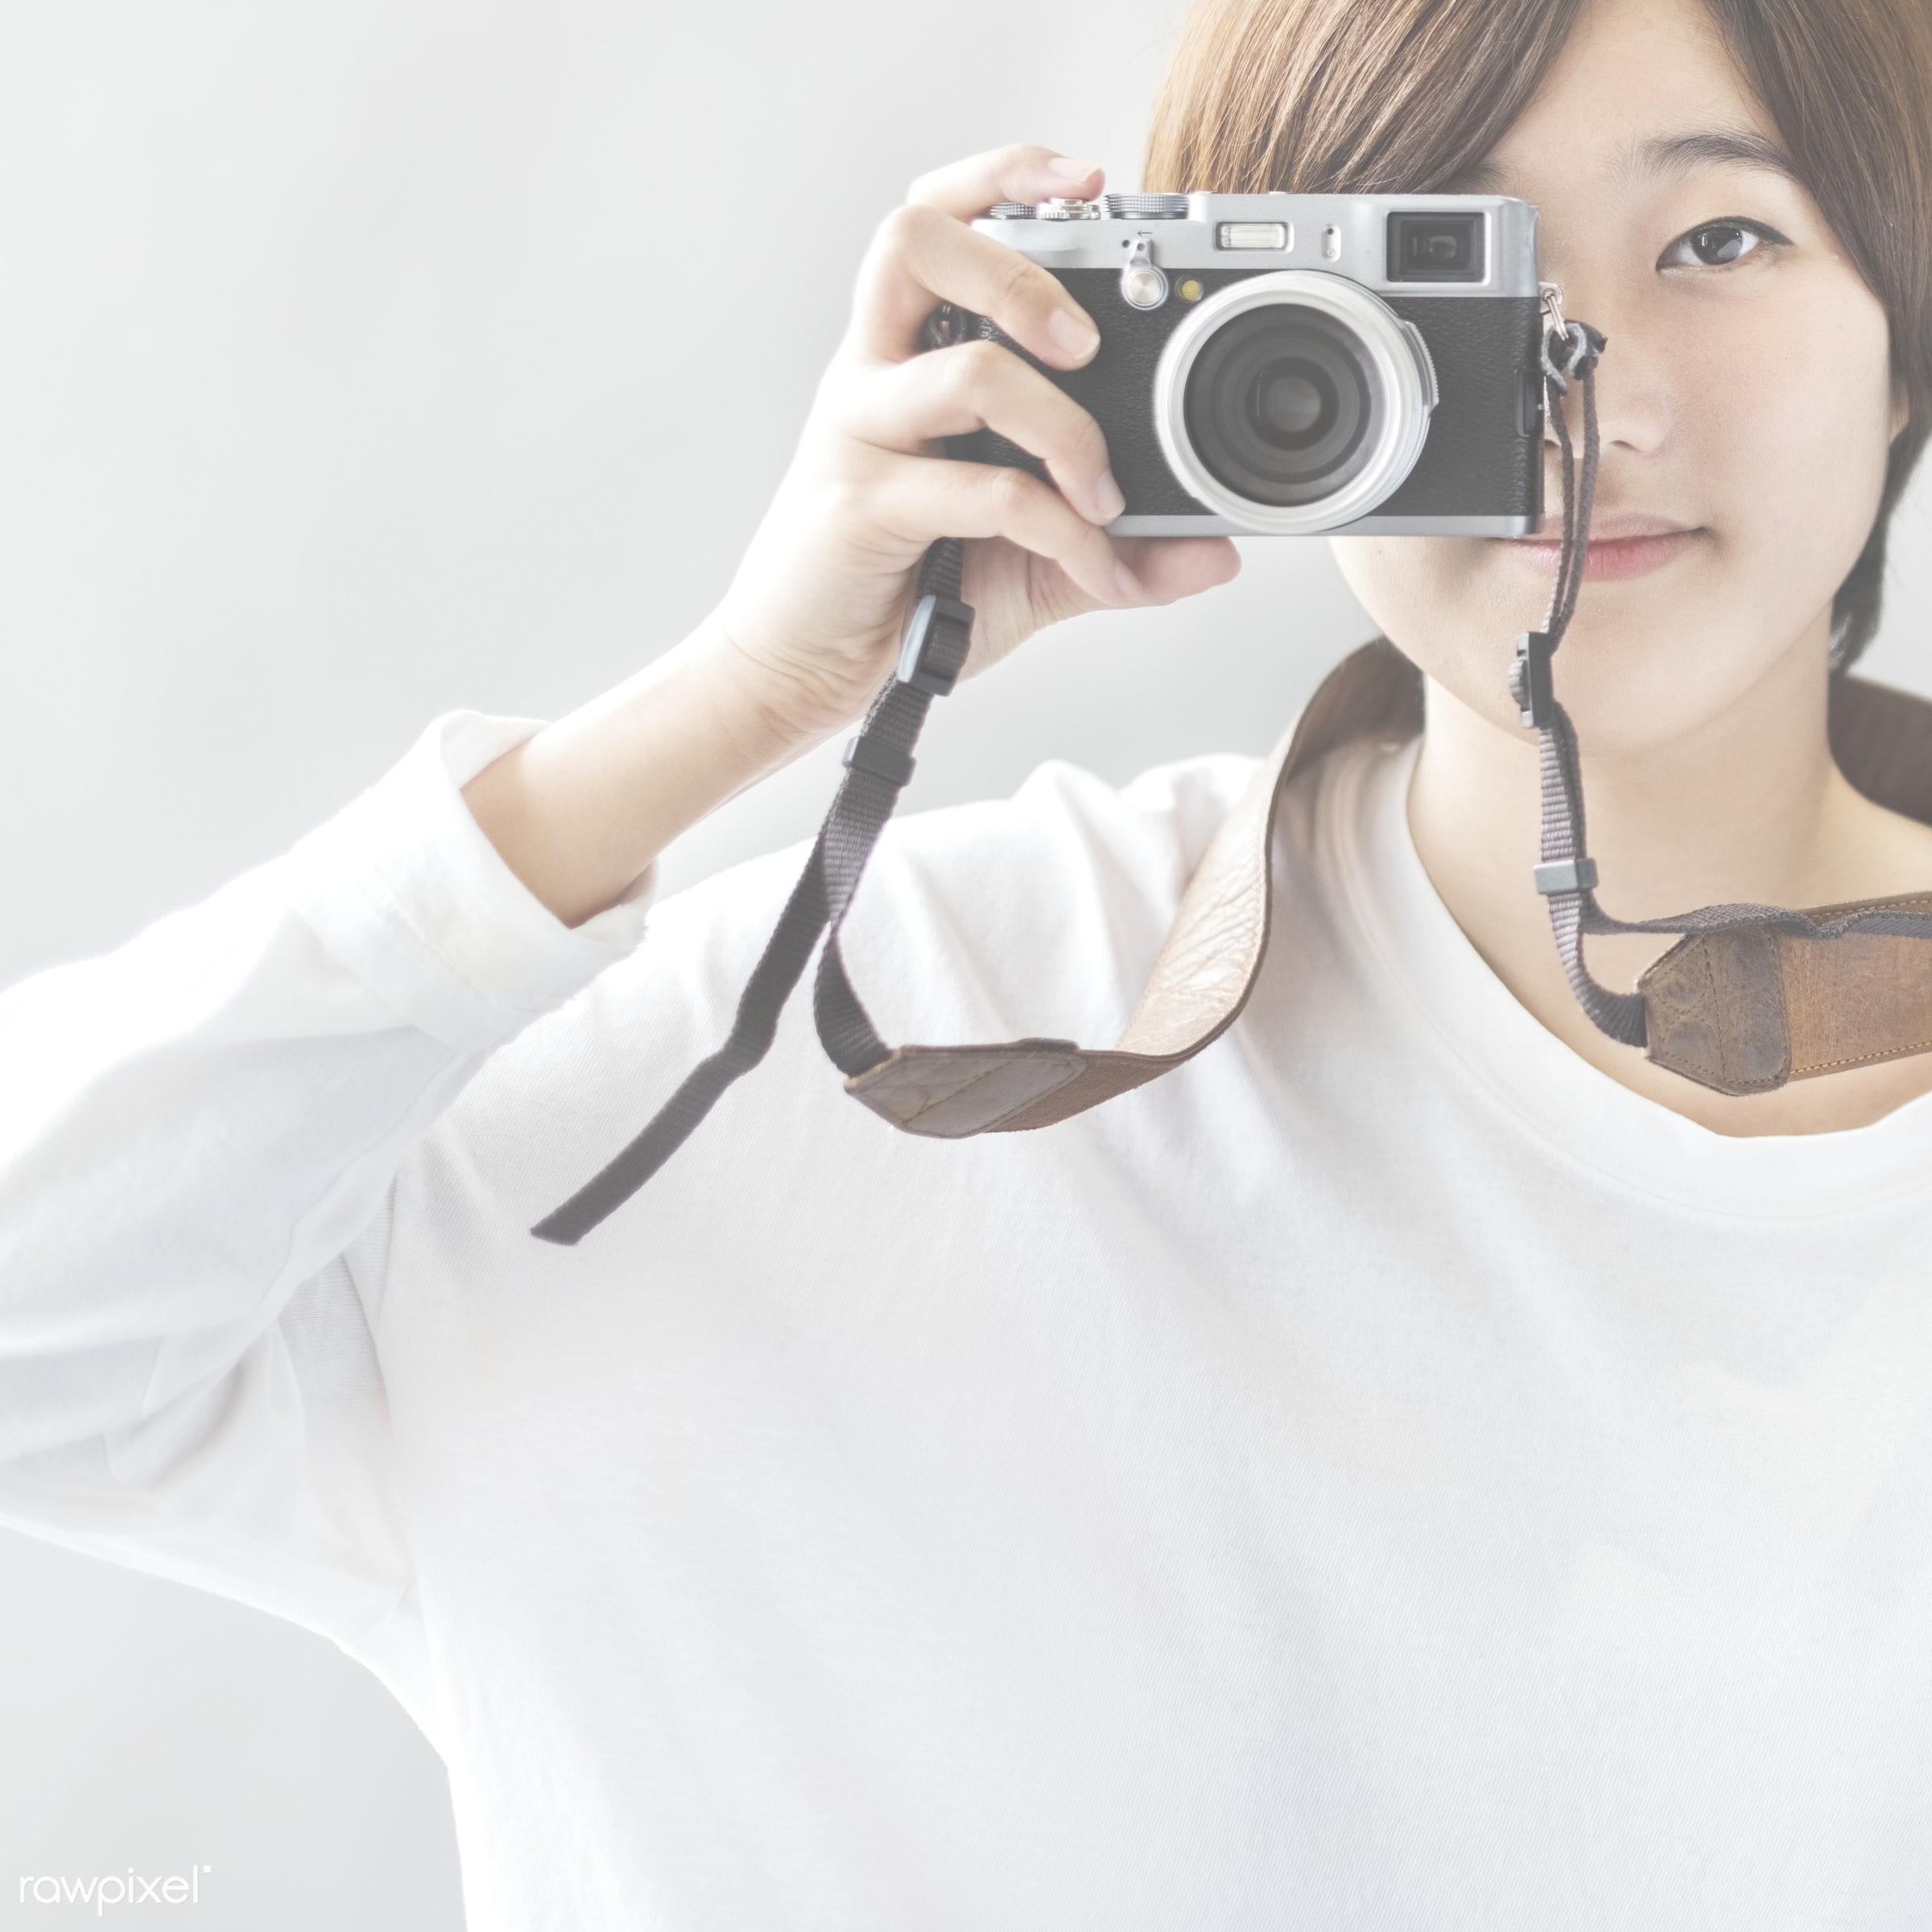 active, adult, art, artistic, asian, attractive, beautiful, brunette, camera, casual, cheerful, creative, device, digital,...